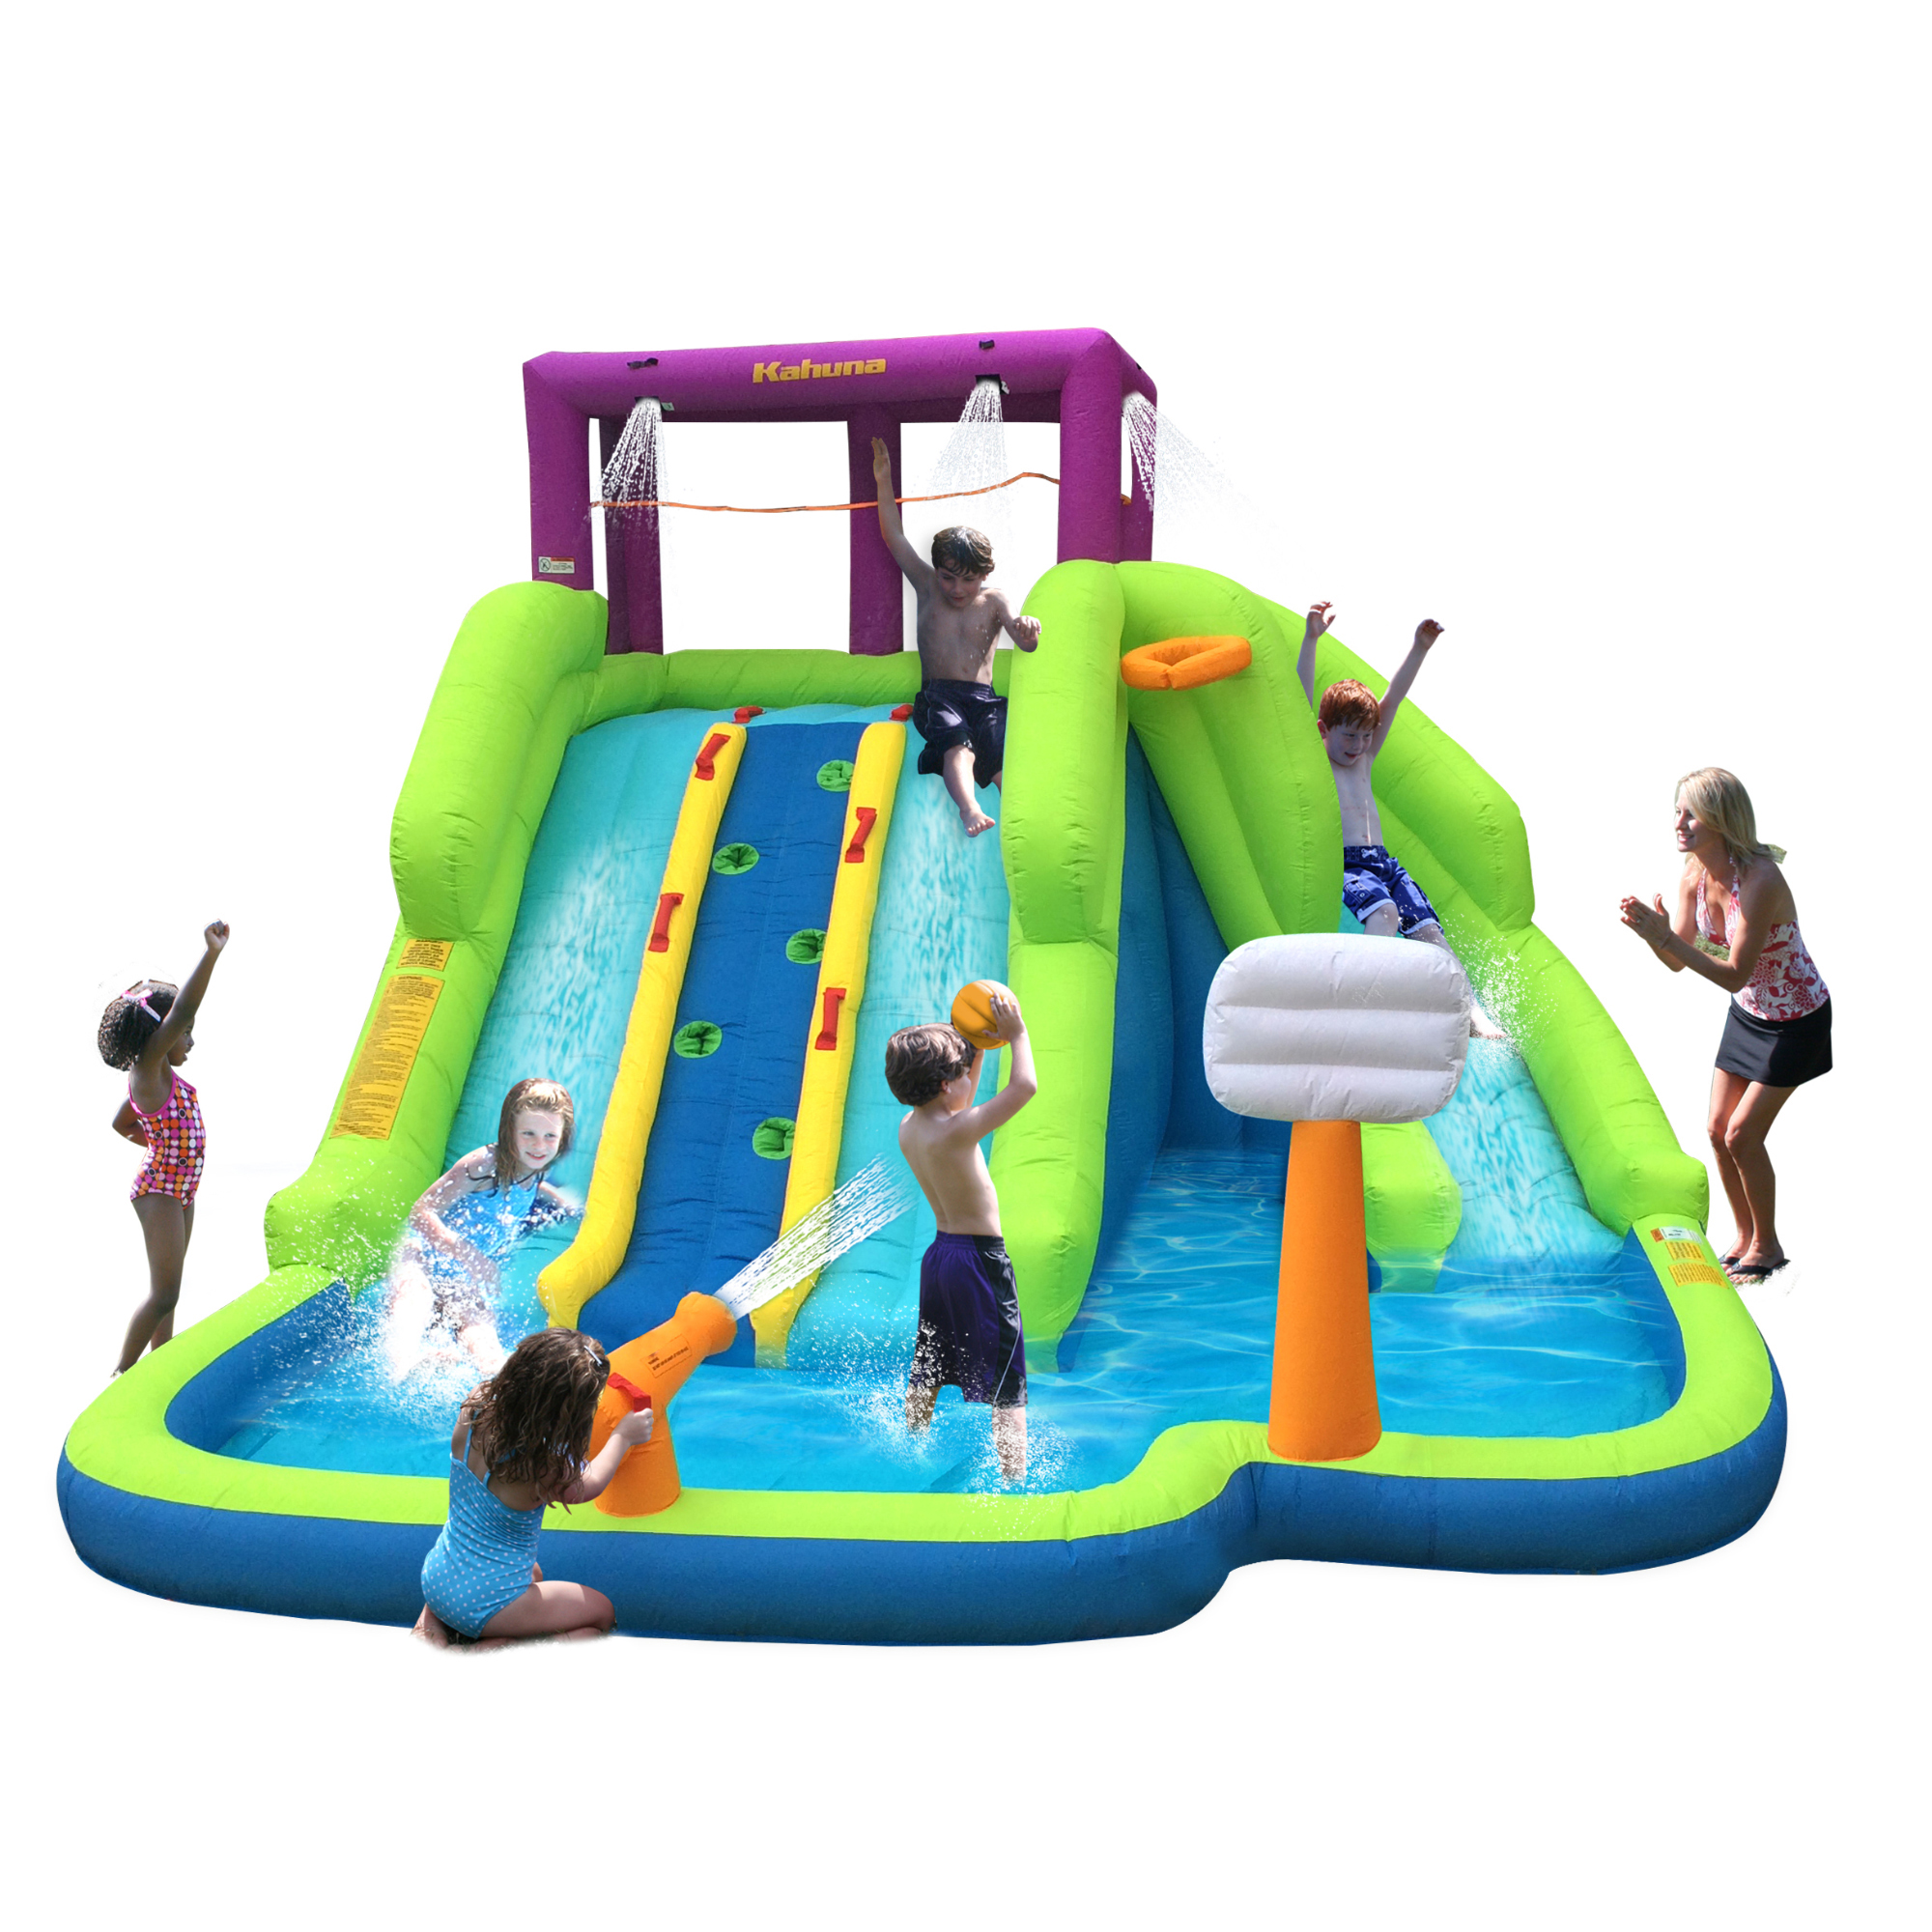 Magic Time - Triple Blast Inflatable Play Center with Water Slides